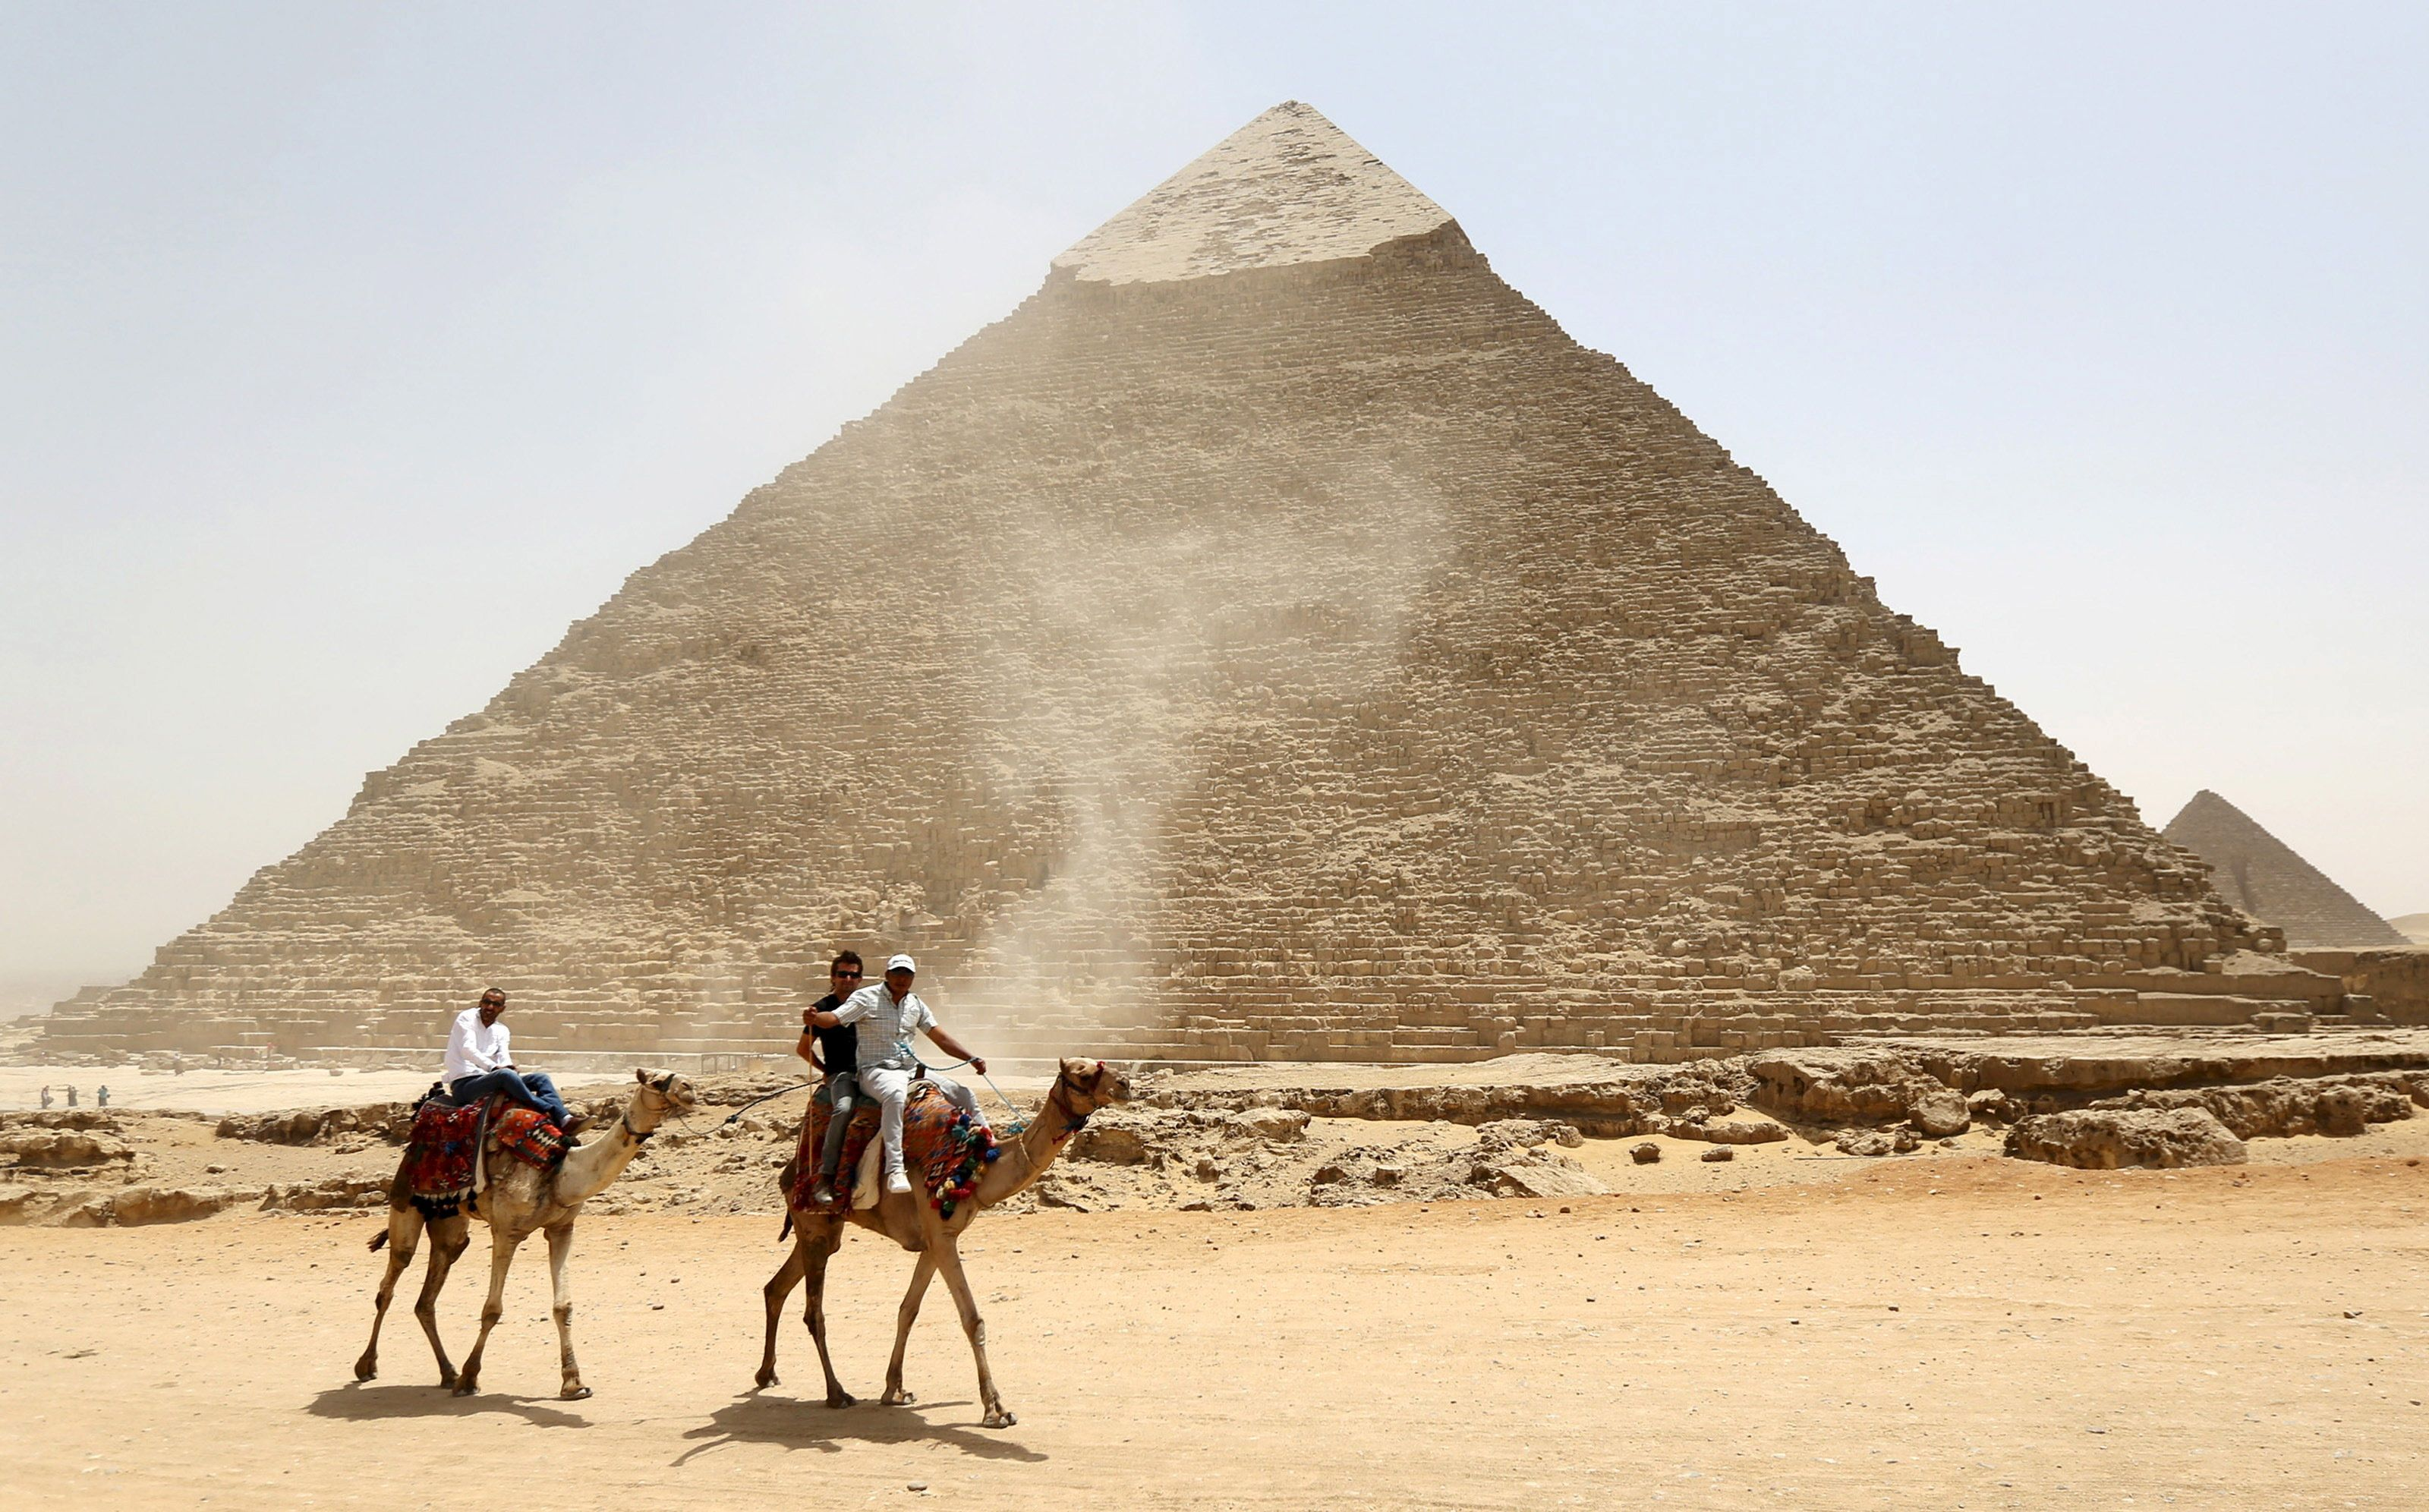 Researchers examining the Great Pyramid of Giza say they have found a 100-foot-long cavity inside.